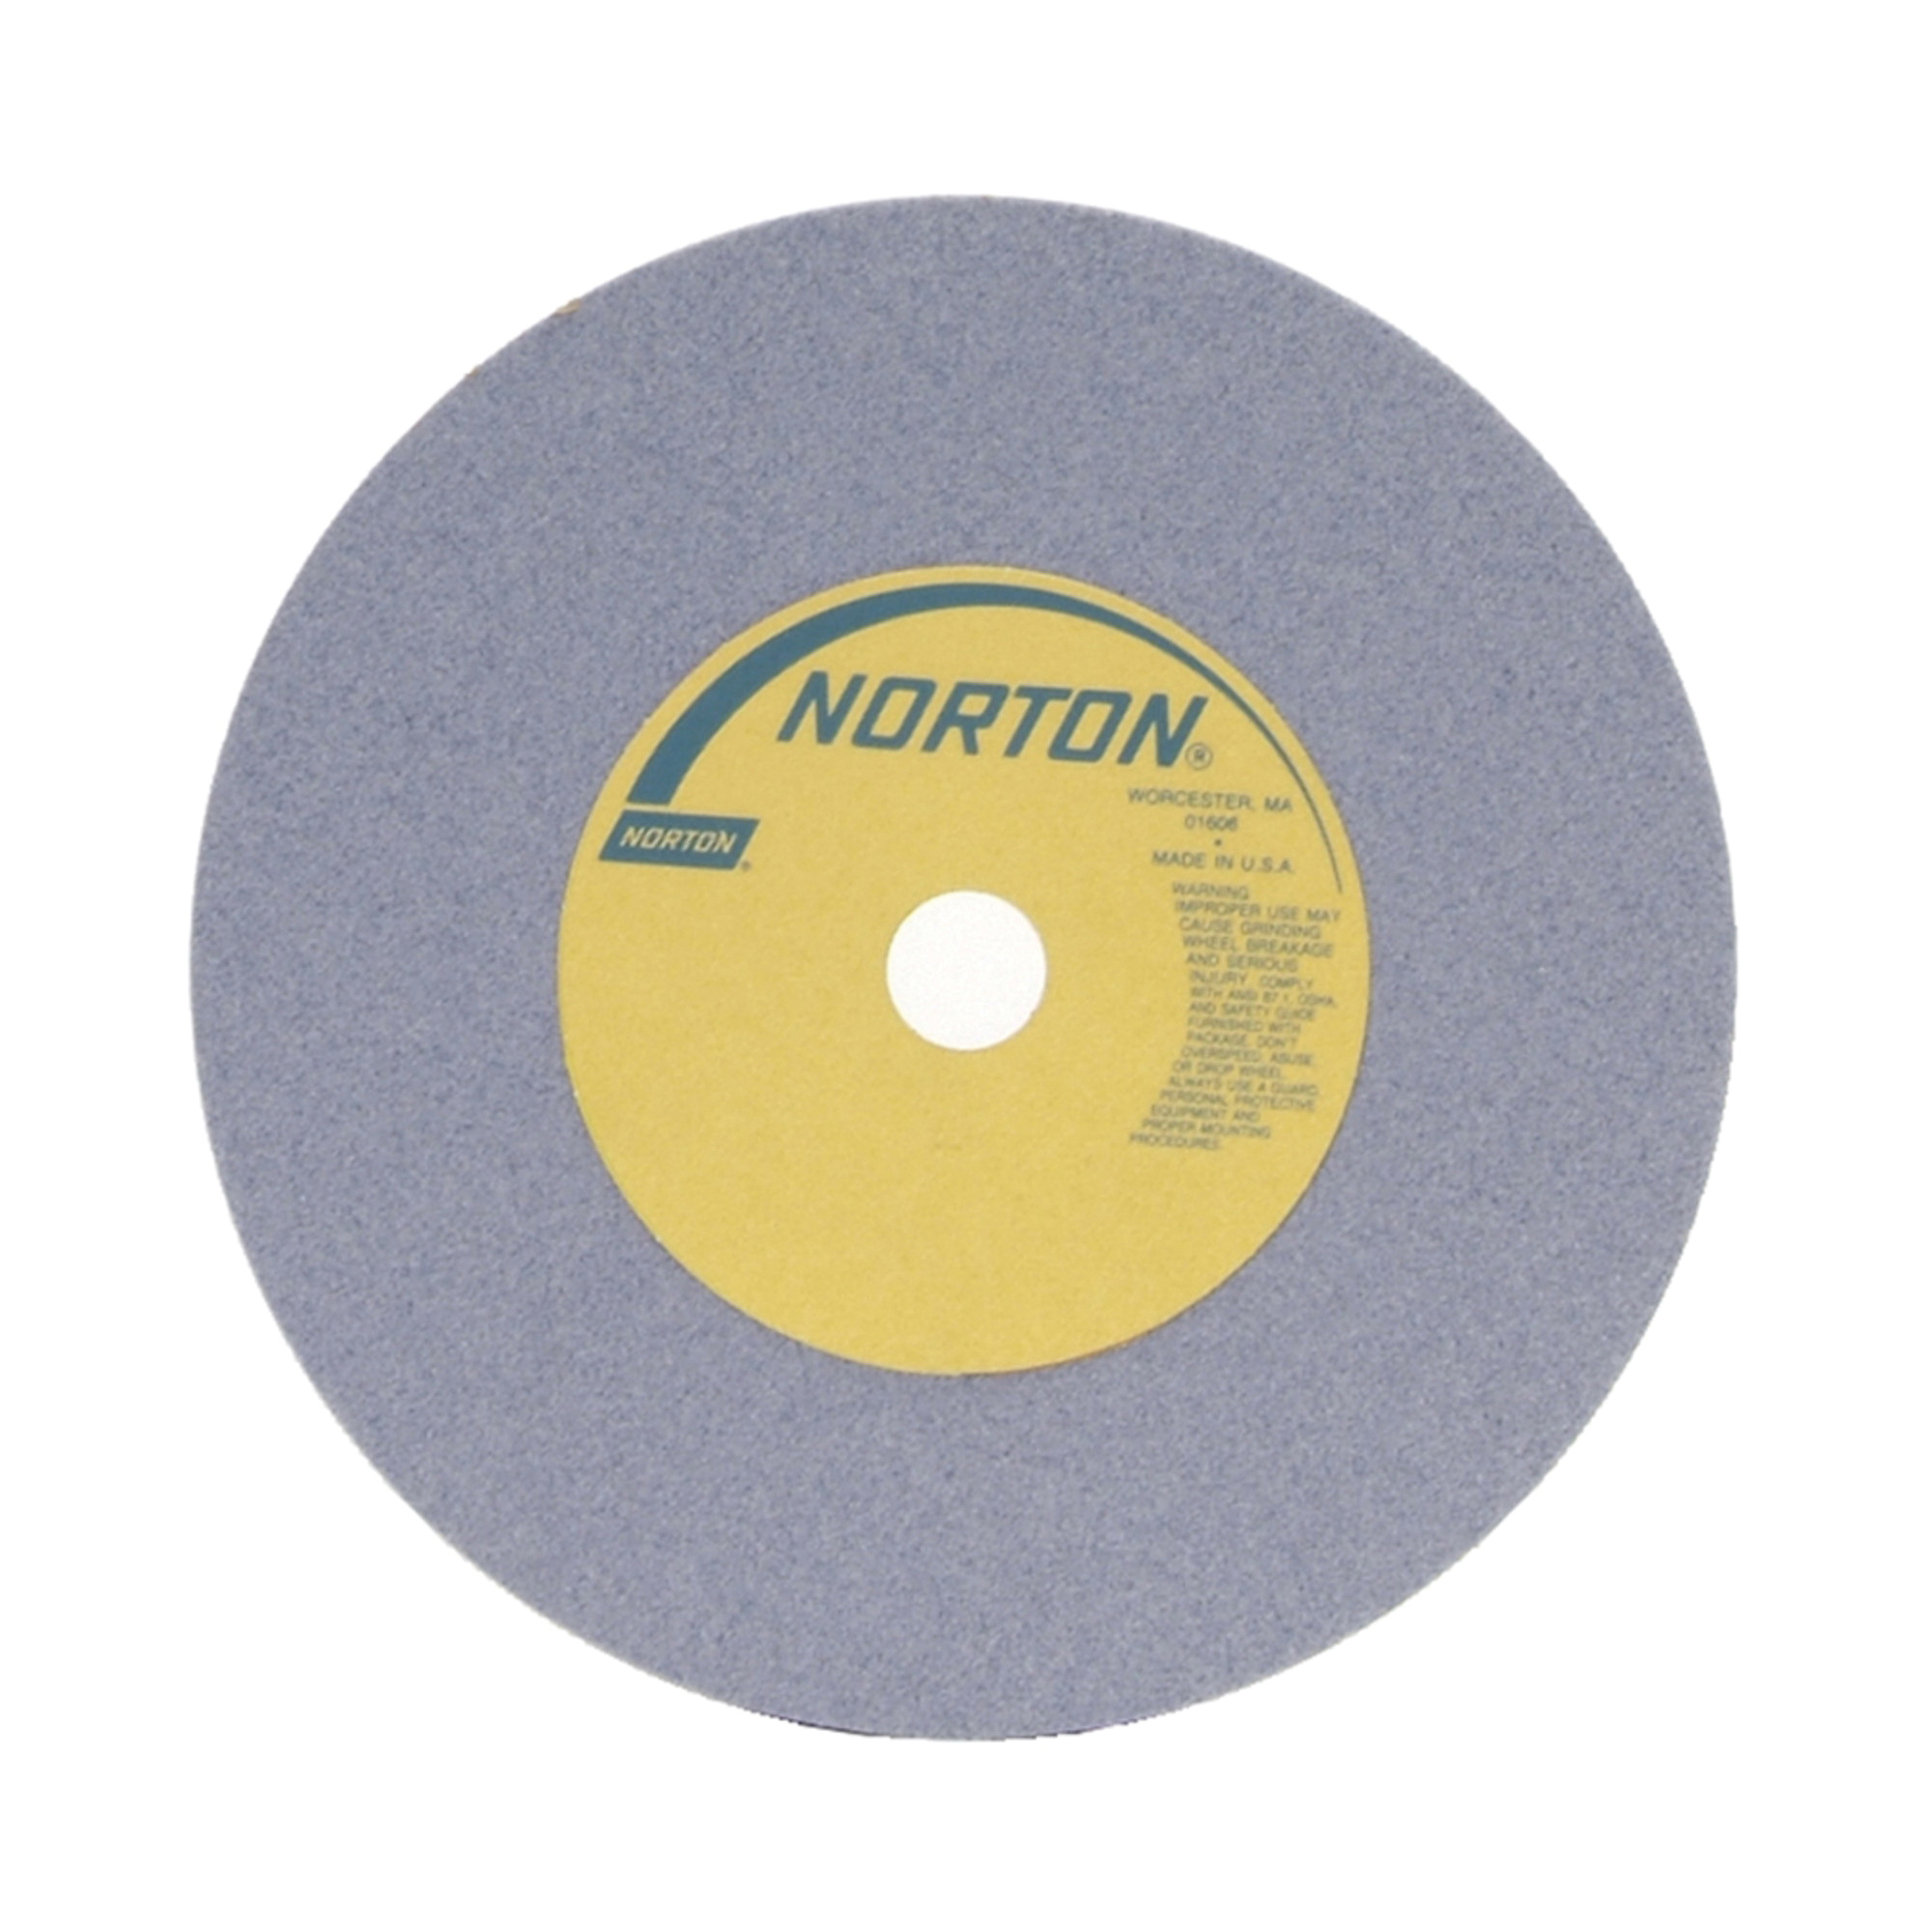 Norton® 66253160750 32A Straight Toolroom Wheel, 10 in Dia x 1 in THK, 3 in Center Hole, 46 Grit, Aluminum Oxide Abrasive